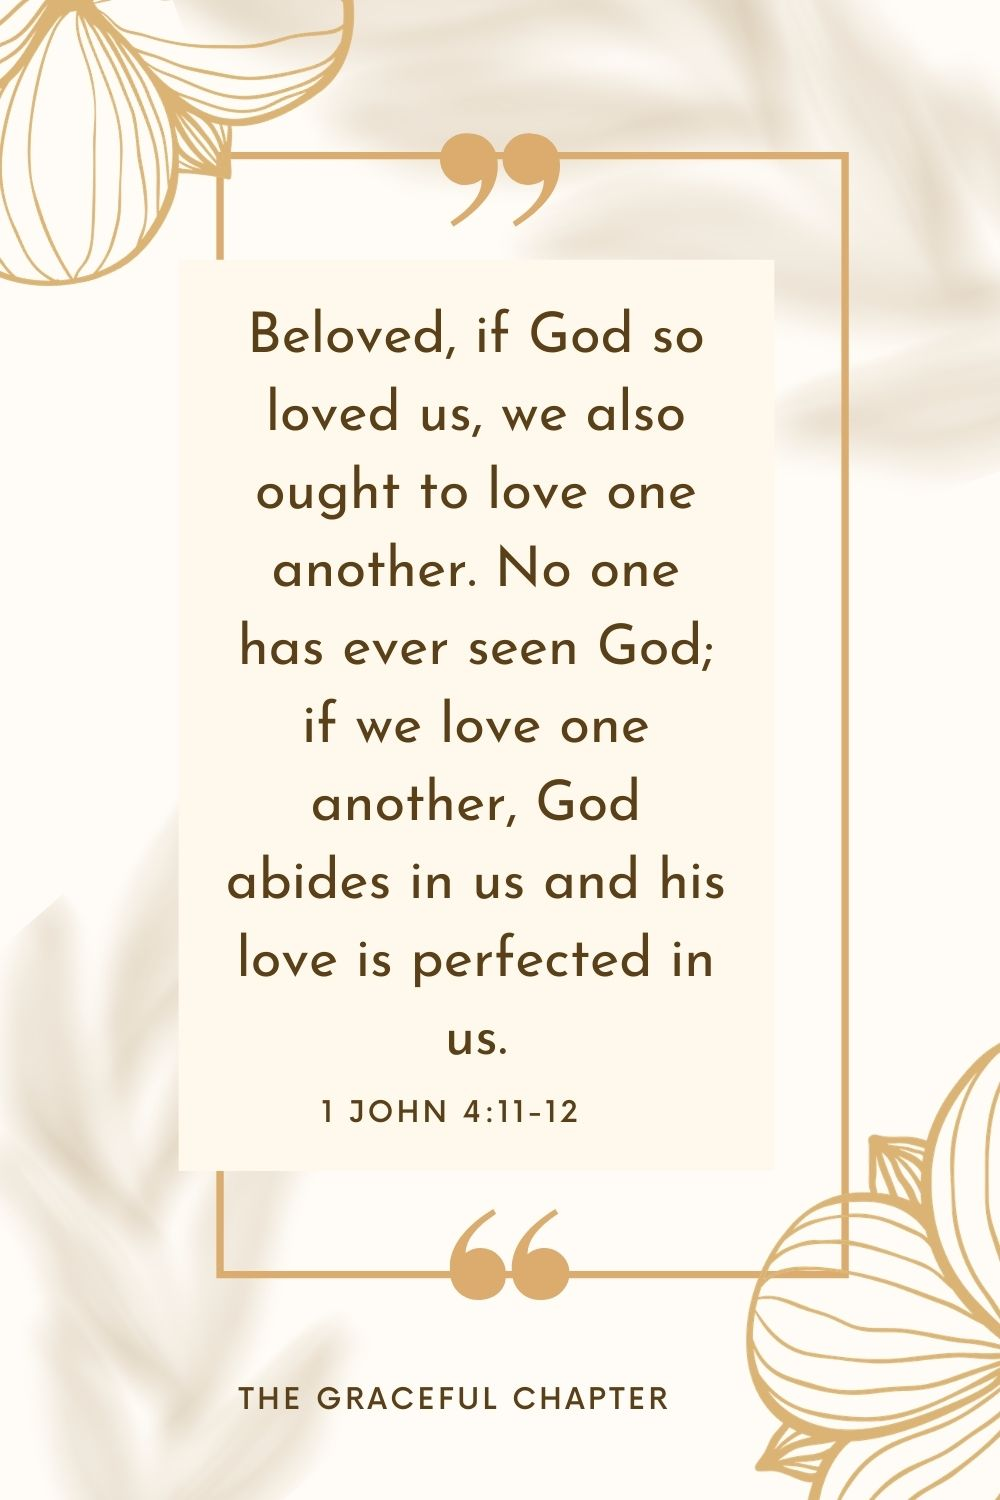 Beloved, if God so loved us, we also ought to love one another. No one has ever seen God; if we love one another, God abides in us and his love is perfected in us. 1 John 4:11-12